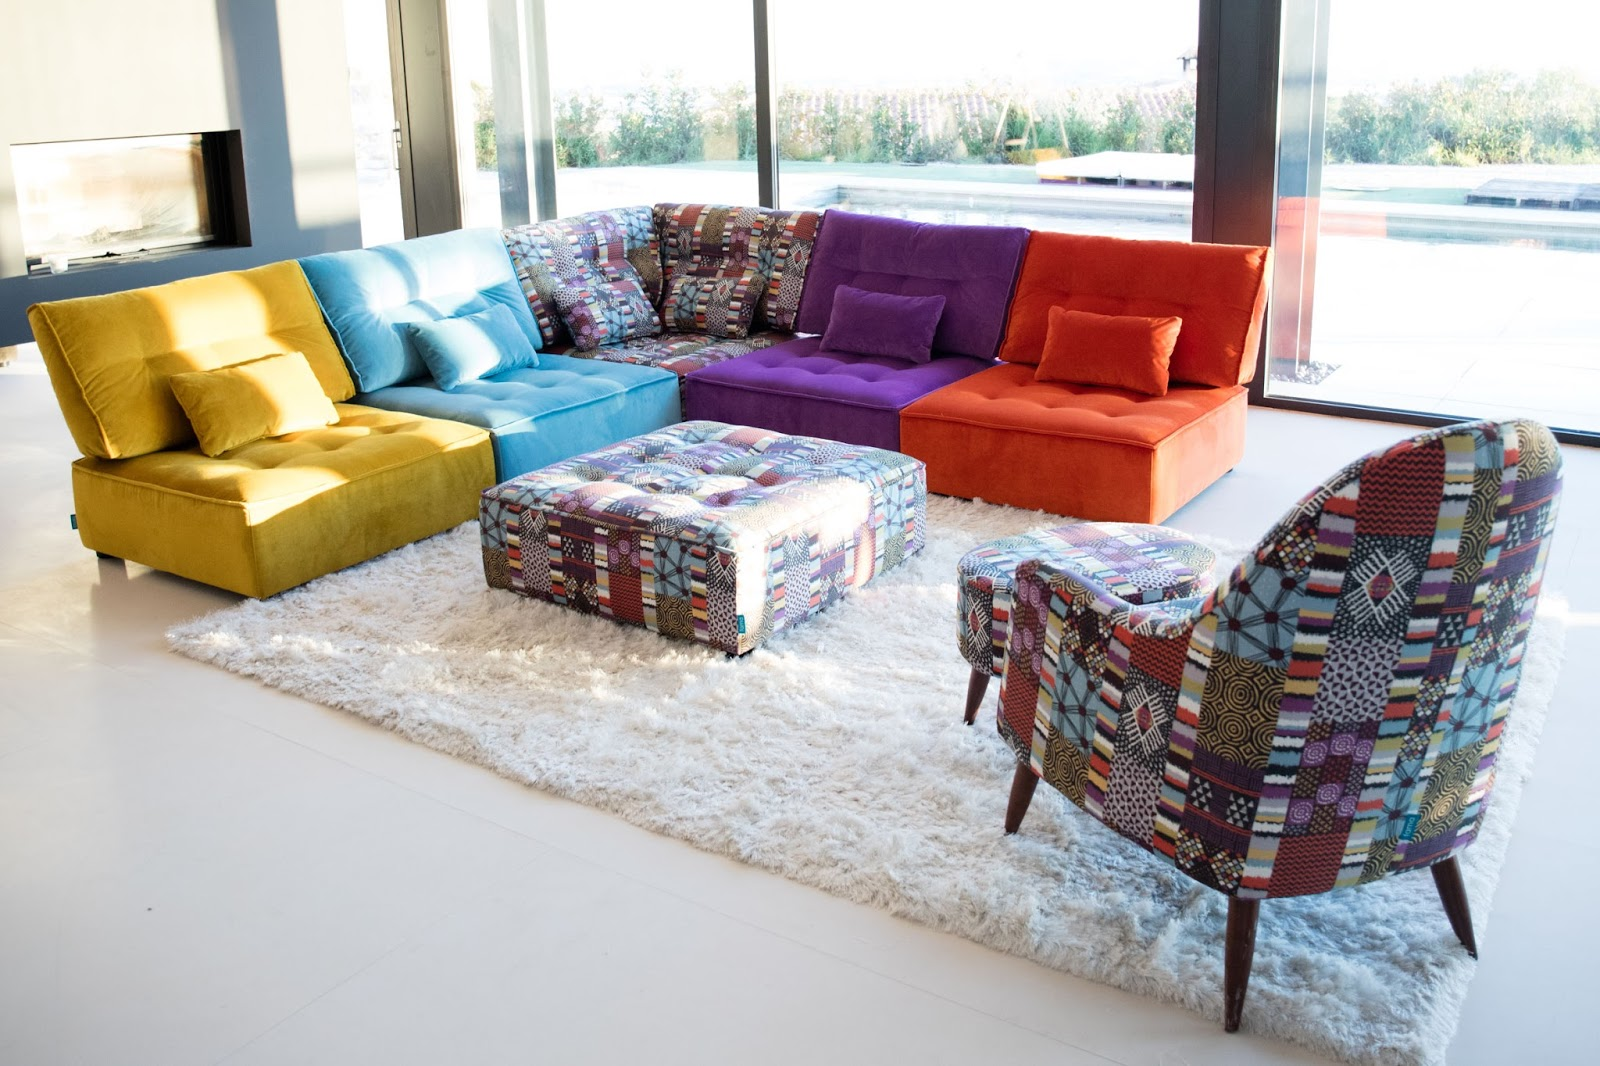 You Can Raise The Height Of The Sofa Before Or While You Sit, Making It  Perfect For Older People Too. Besides, You Can Customise This Sofa In Terms  Of Look, ...